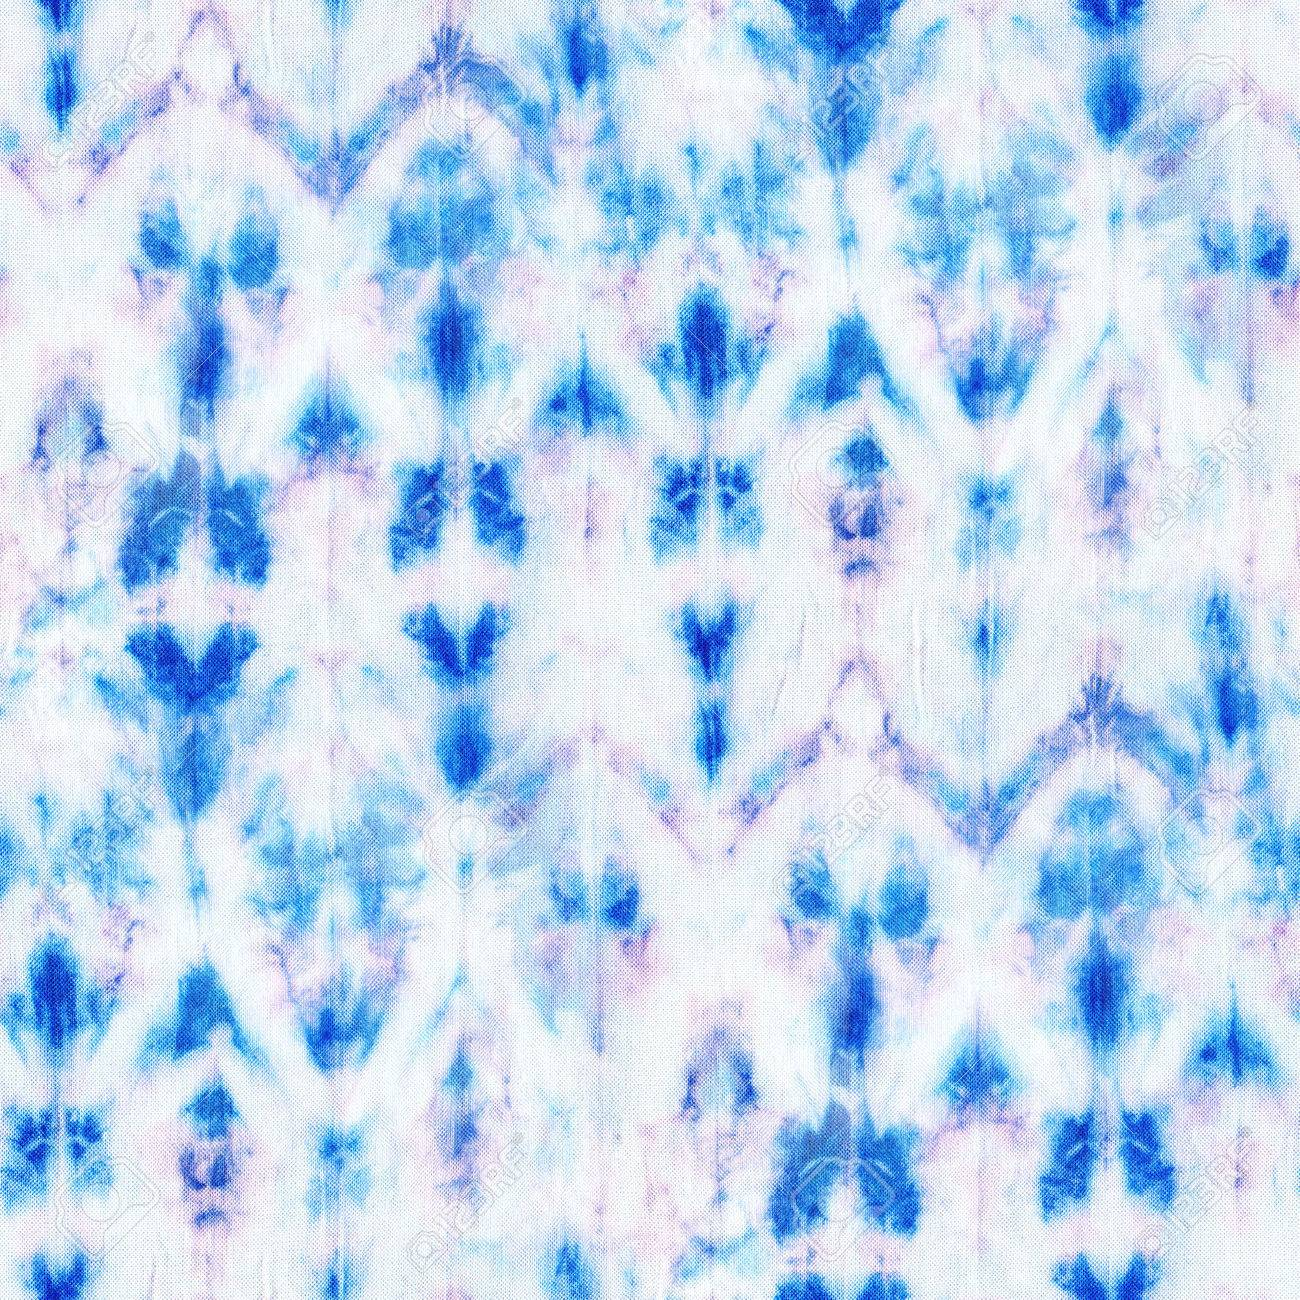 Beautiful Seamless Tie Dye Pattern On White Silk Batik Hand Stock Photo Picture And Royalty Free Image Image 48861951